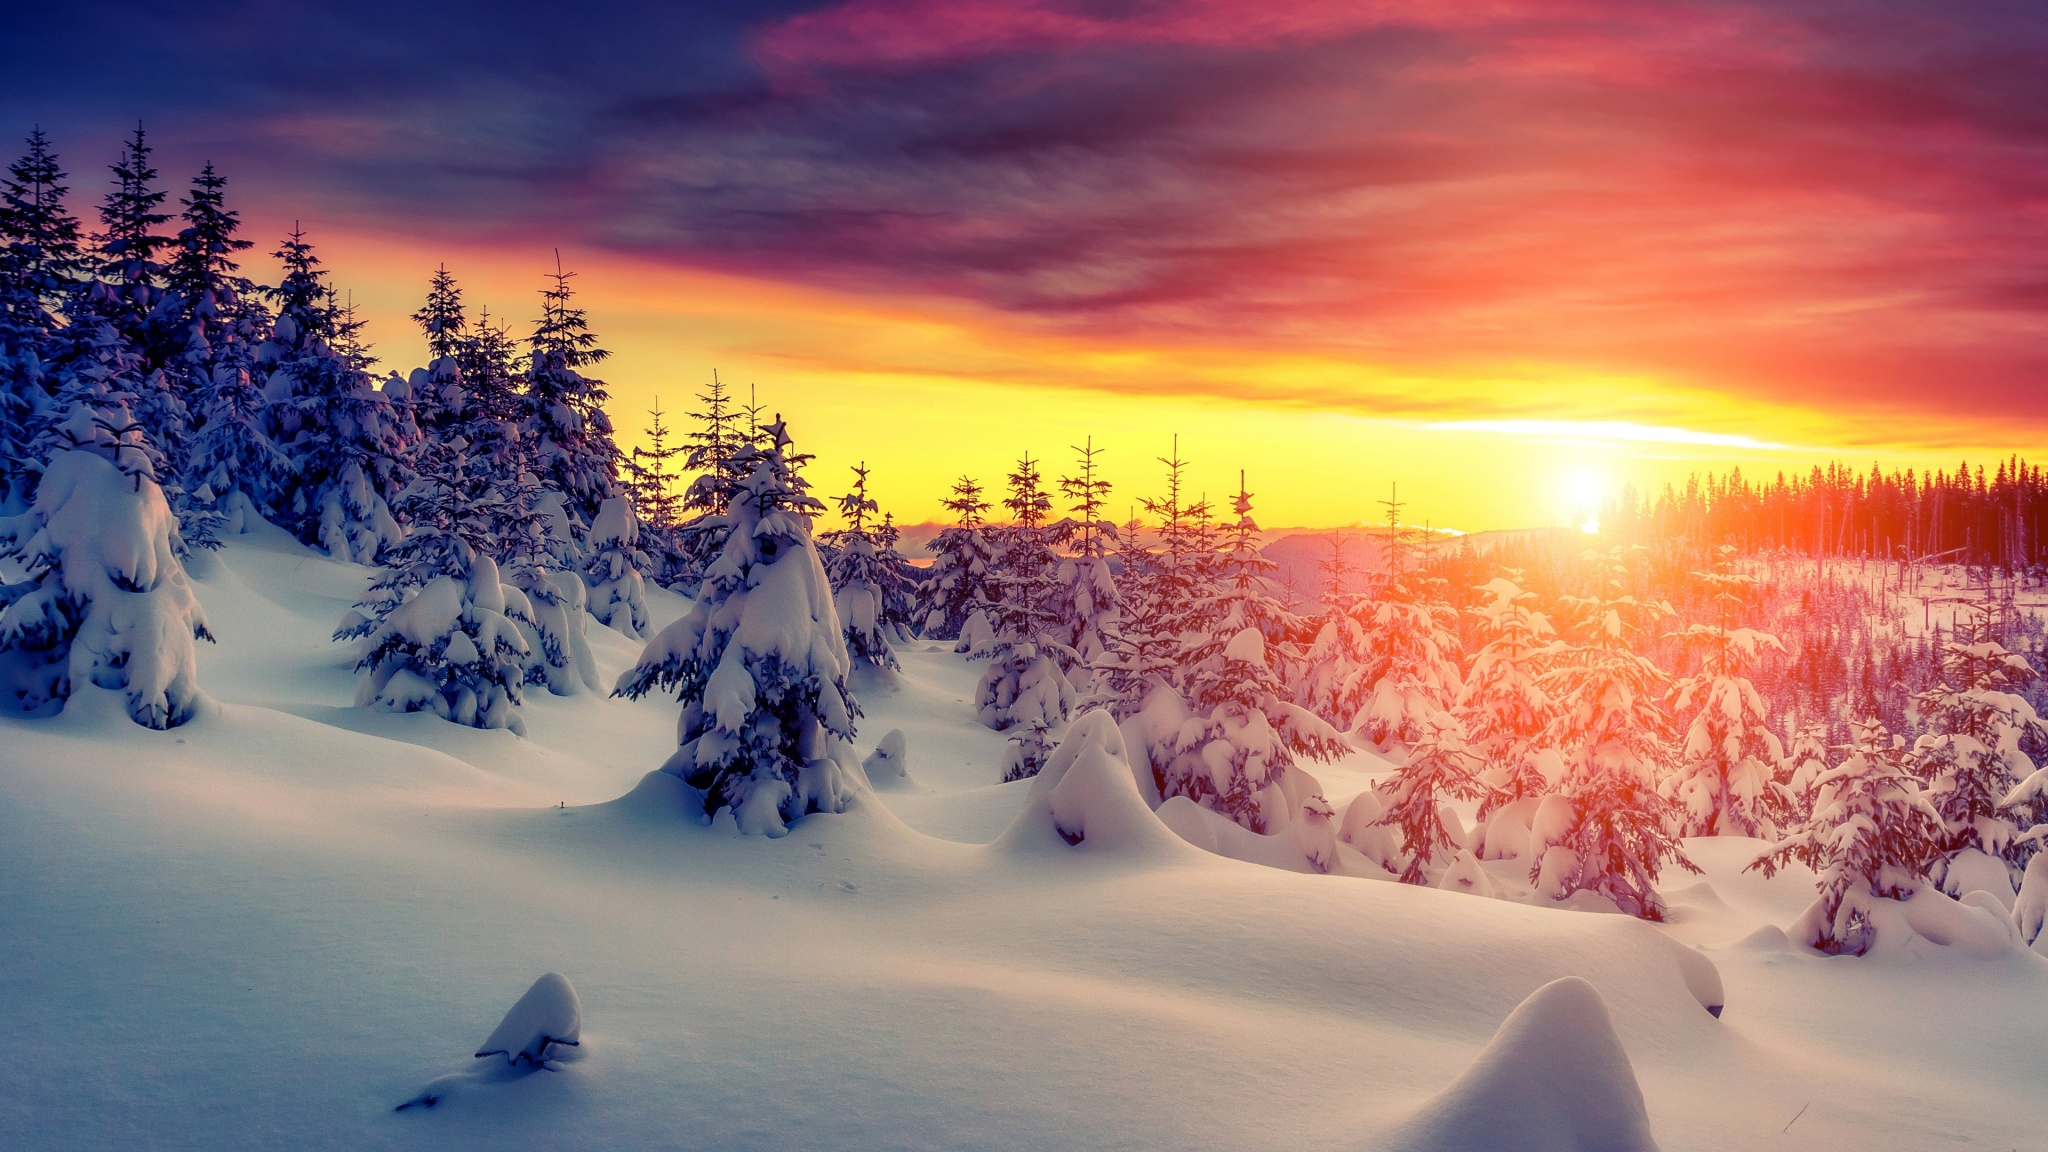 winter forest sunset sky snow wallpapers - 2048x1152